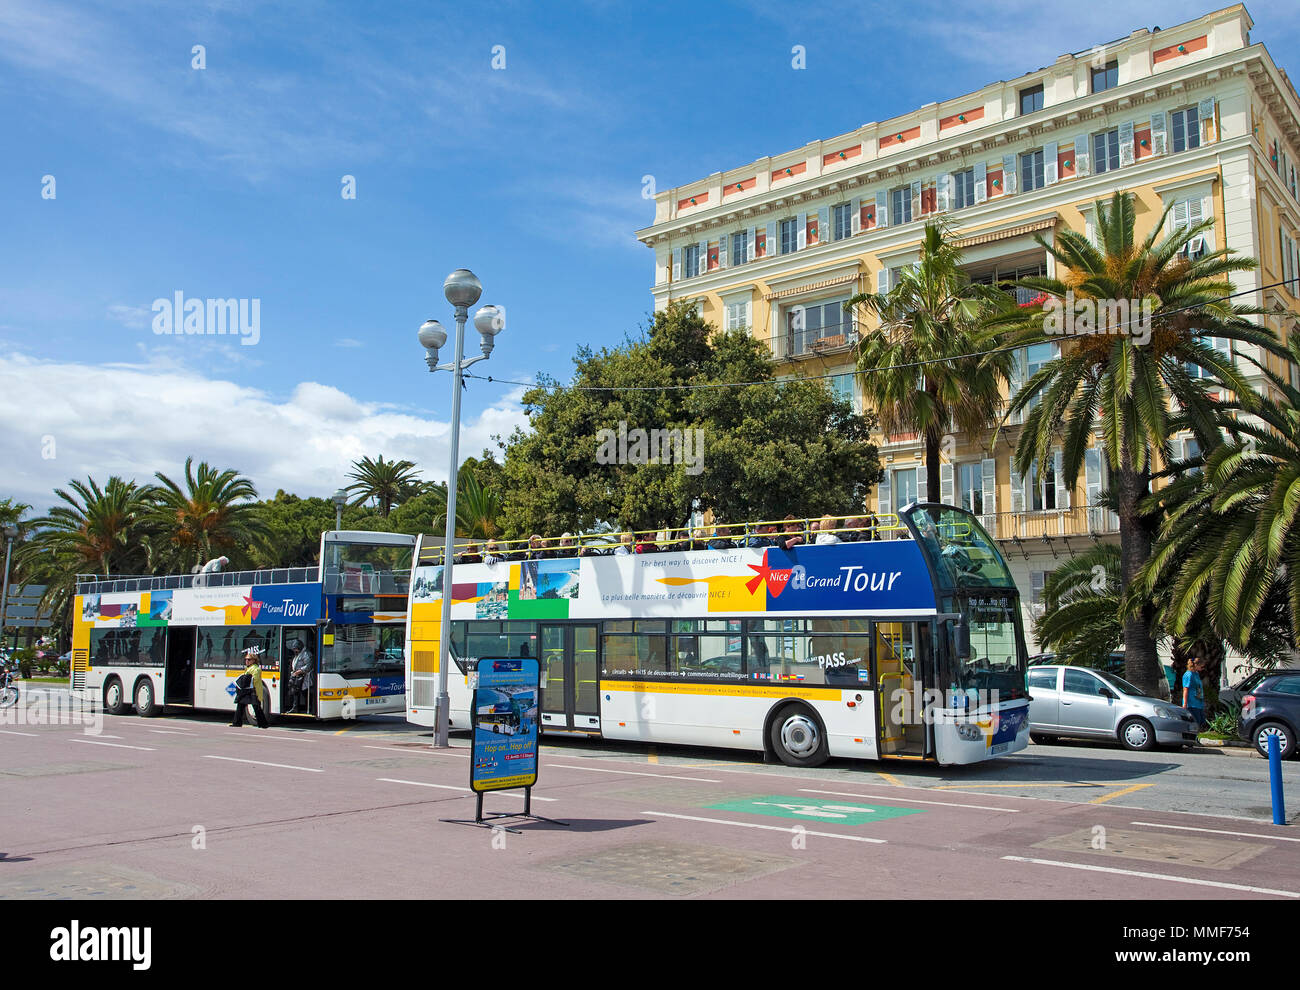 Sightseeing tour, Tourist bus at the Promenade des Anglais, Nice, Côte d'Azur, Alpes-Maritimes, South France, France, Europe - Stock Image